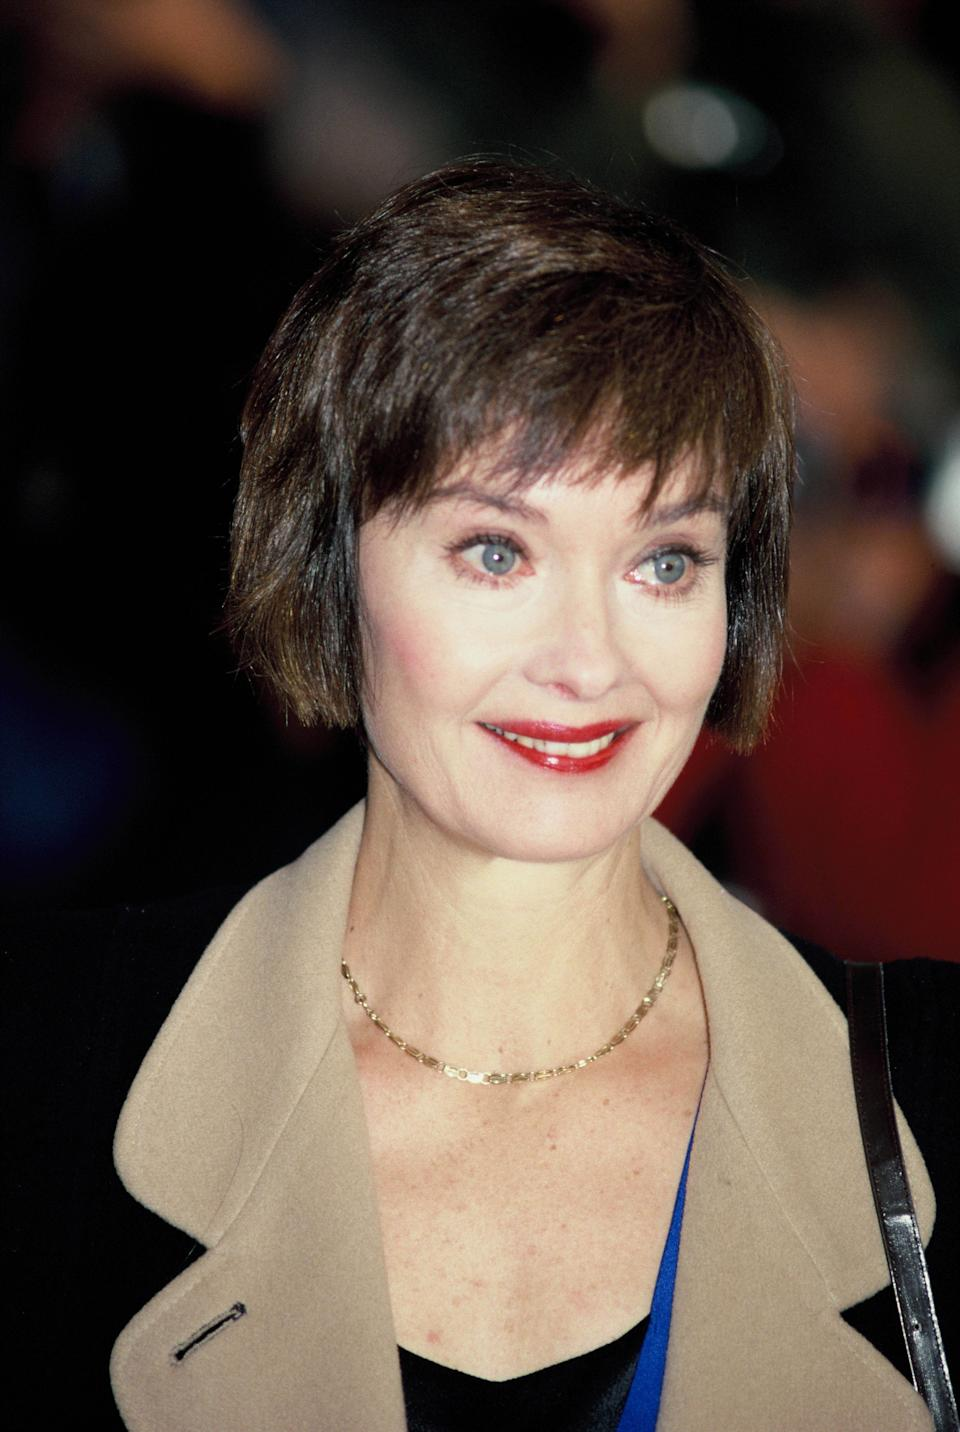 English actress Nicola Pagett in 1990 ca. in London, England.  (Photo by Georges De Keerle/Getty Images)